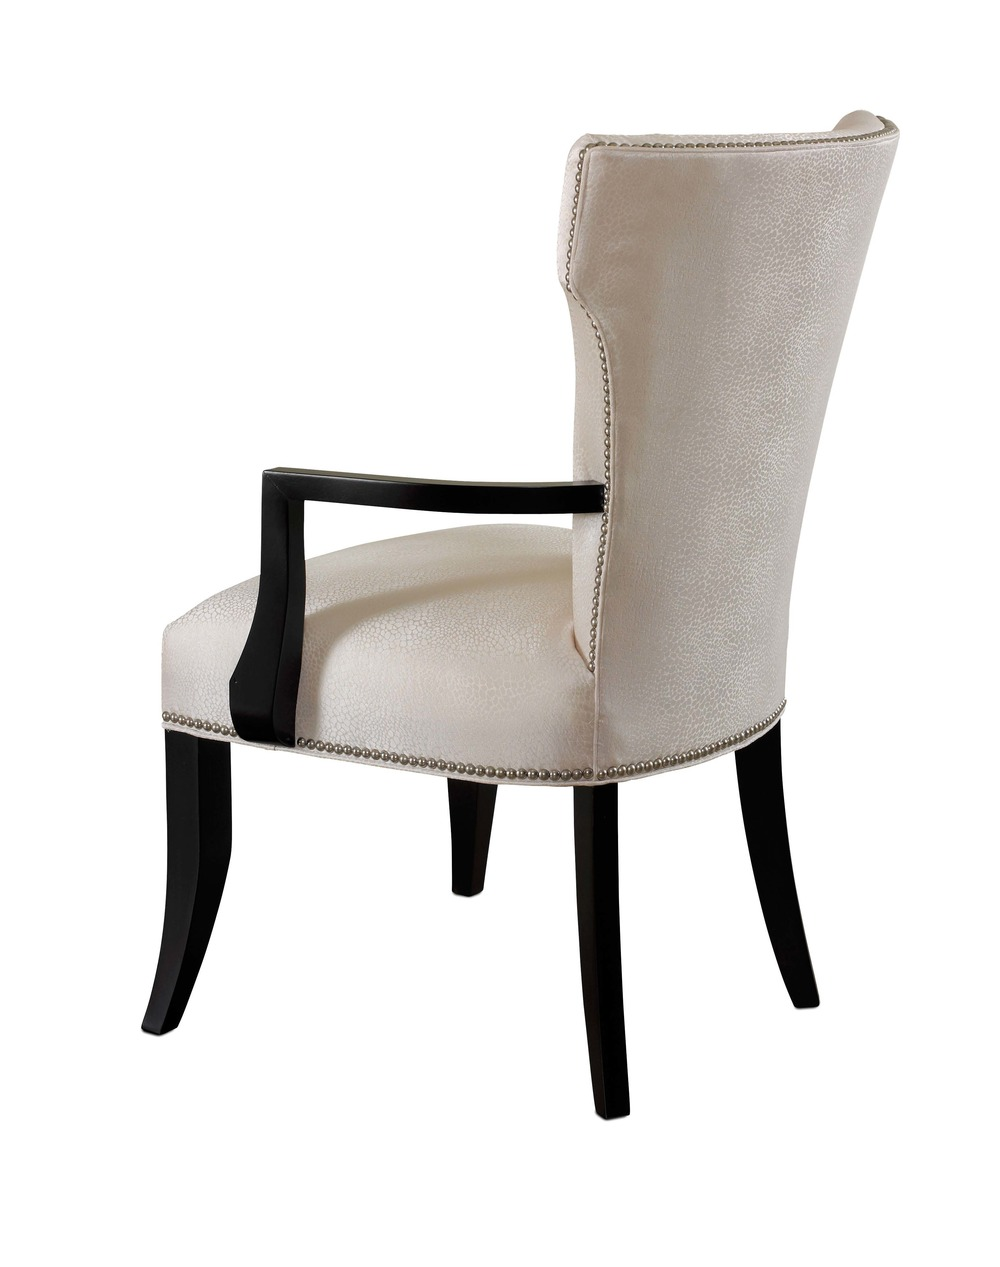 Designmaster Furniture - Destin Arm Chair